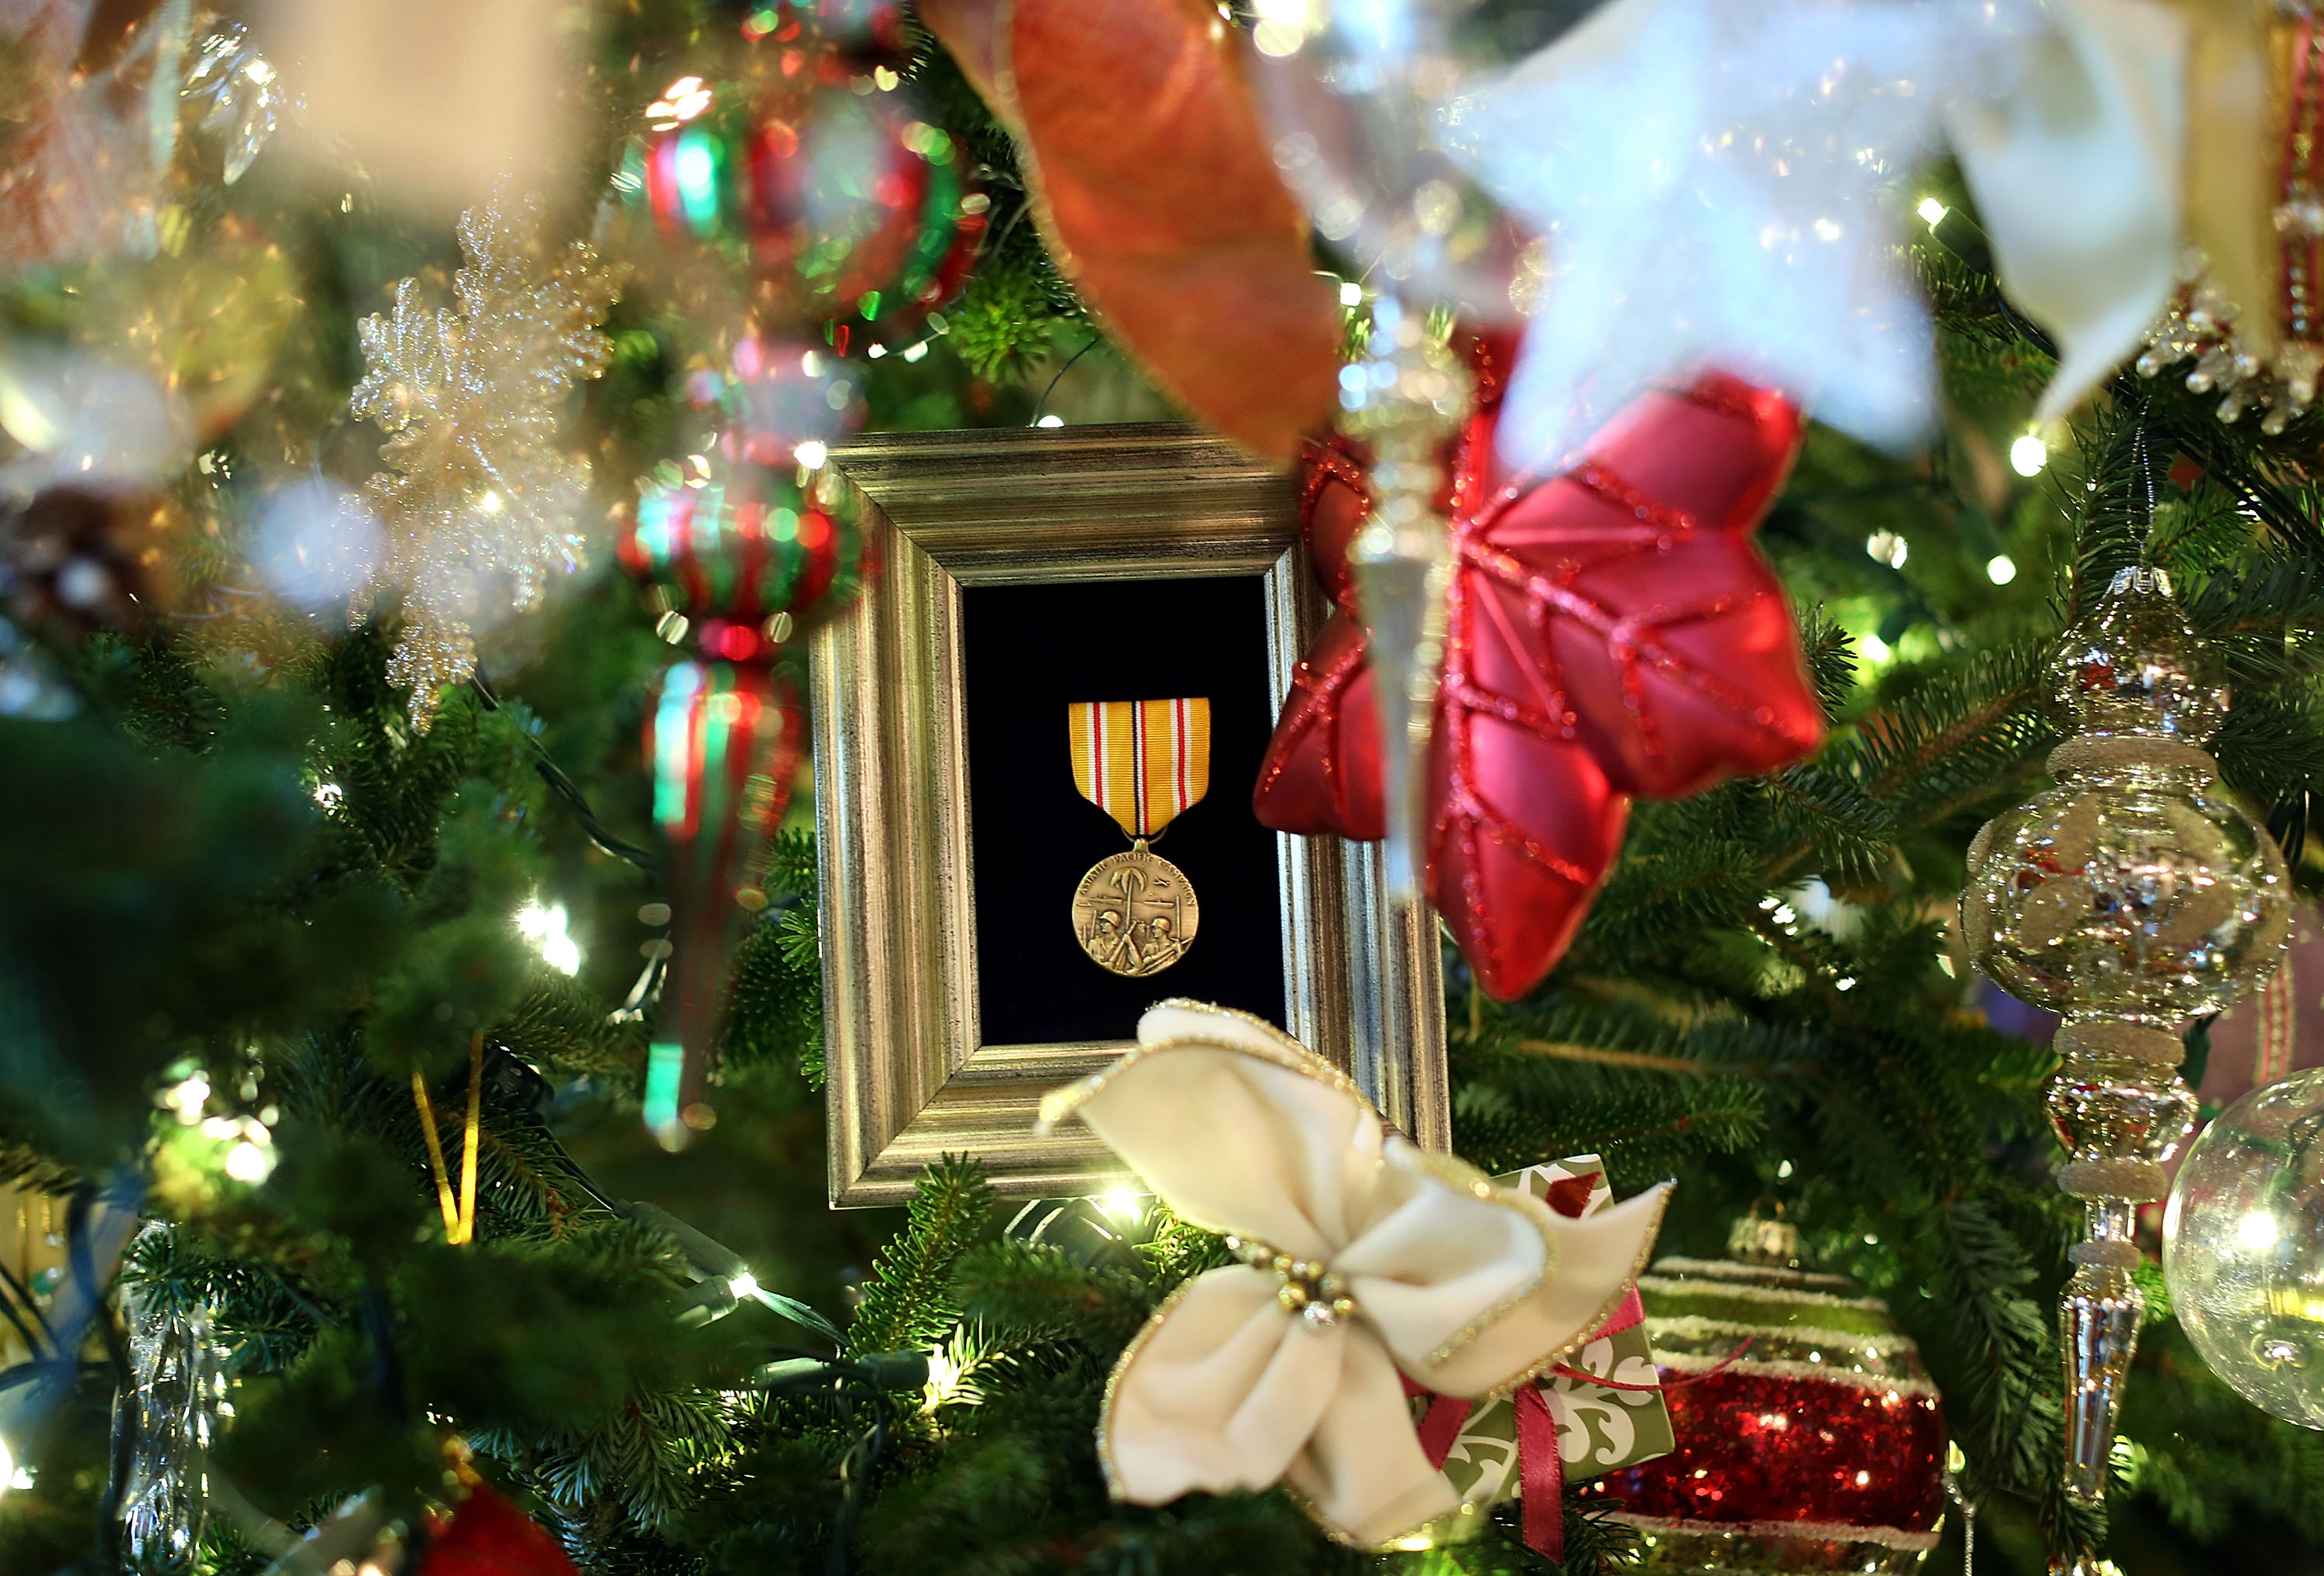 Many ornaments and other decorations celebrate members of the military, veterans and their families.